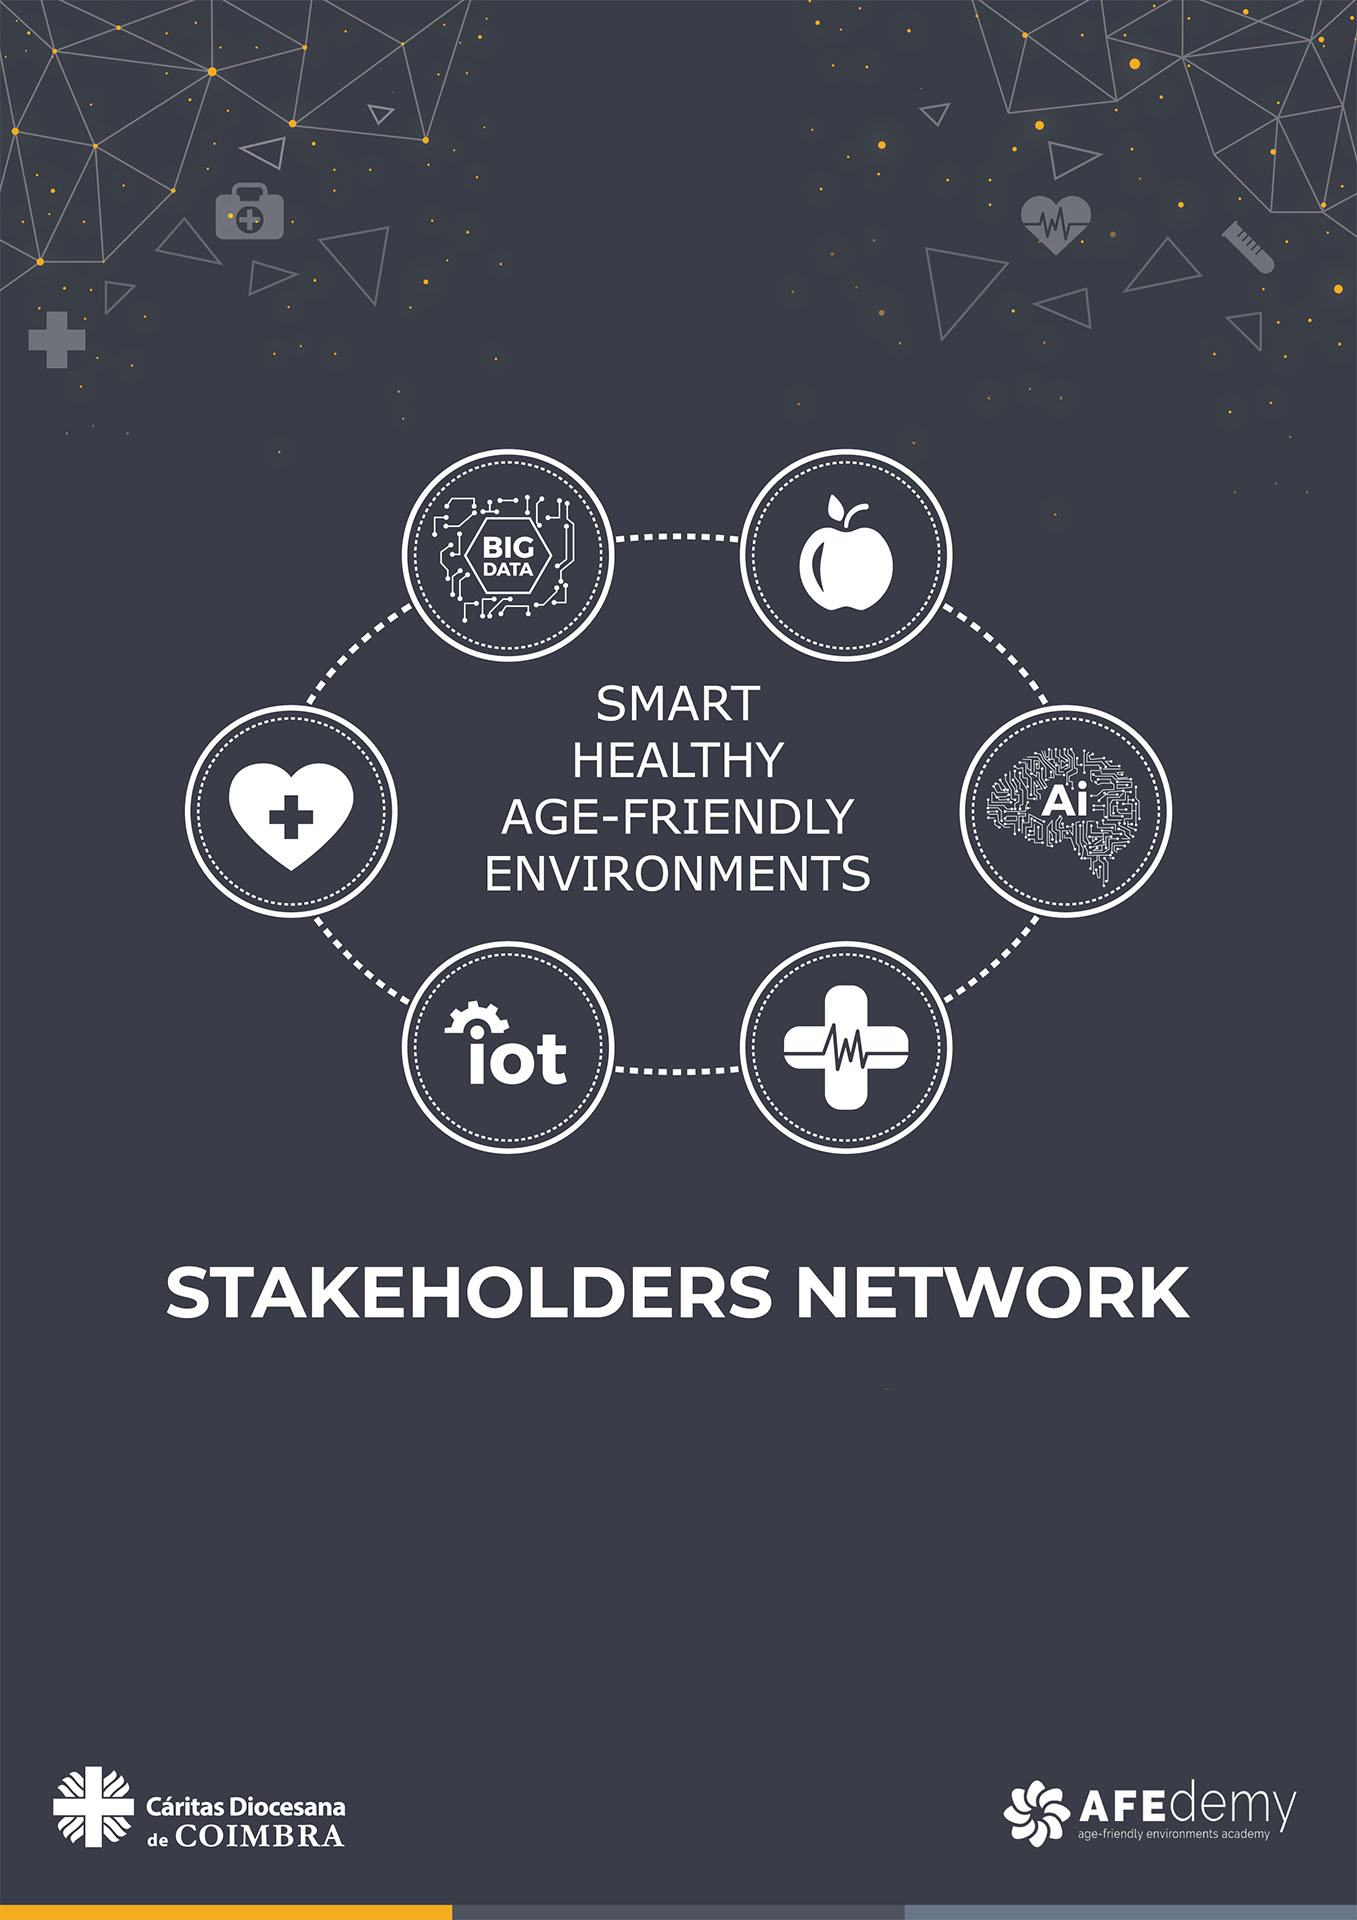 Seasus joins SHAFE - Stakeholders Network on Smart, Healthy Age-Friendly Environments